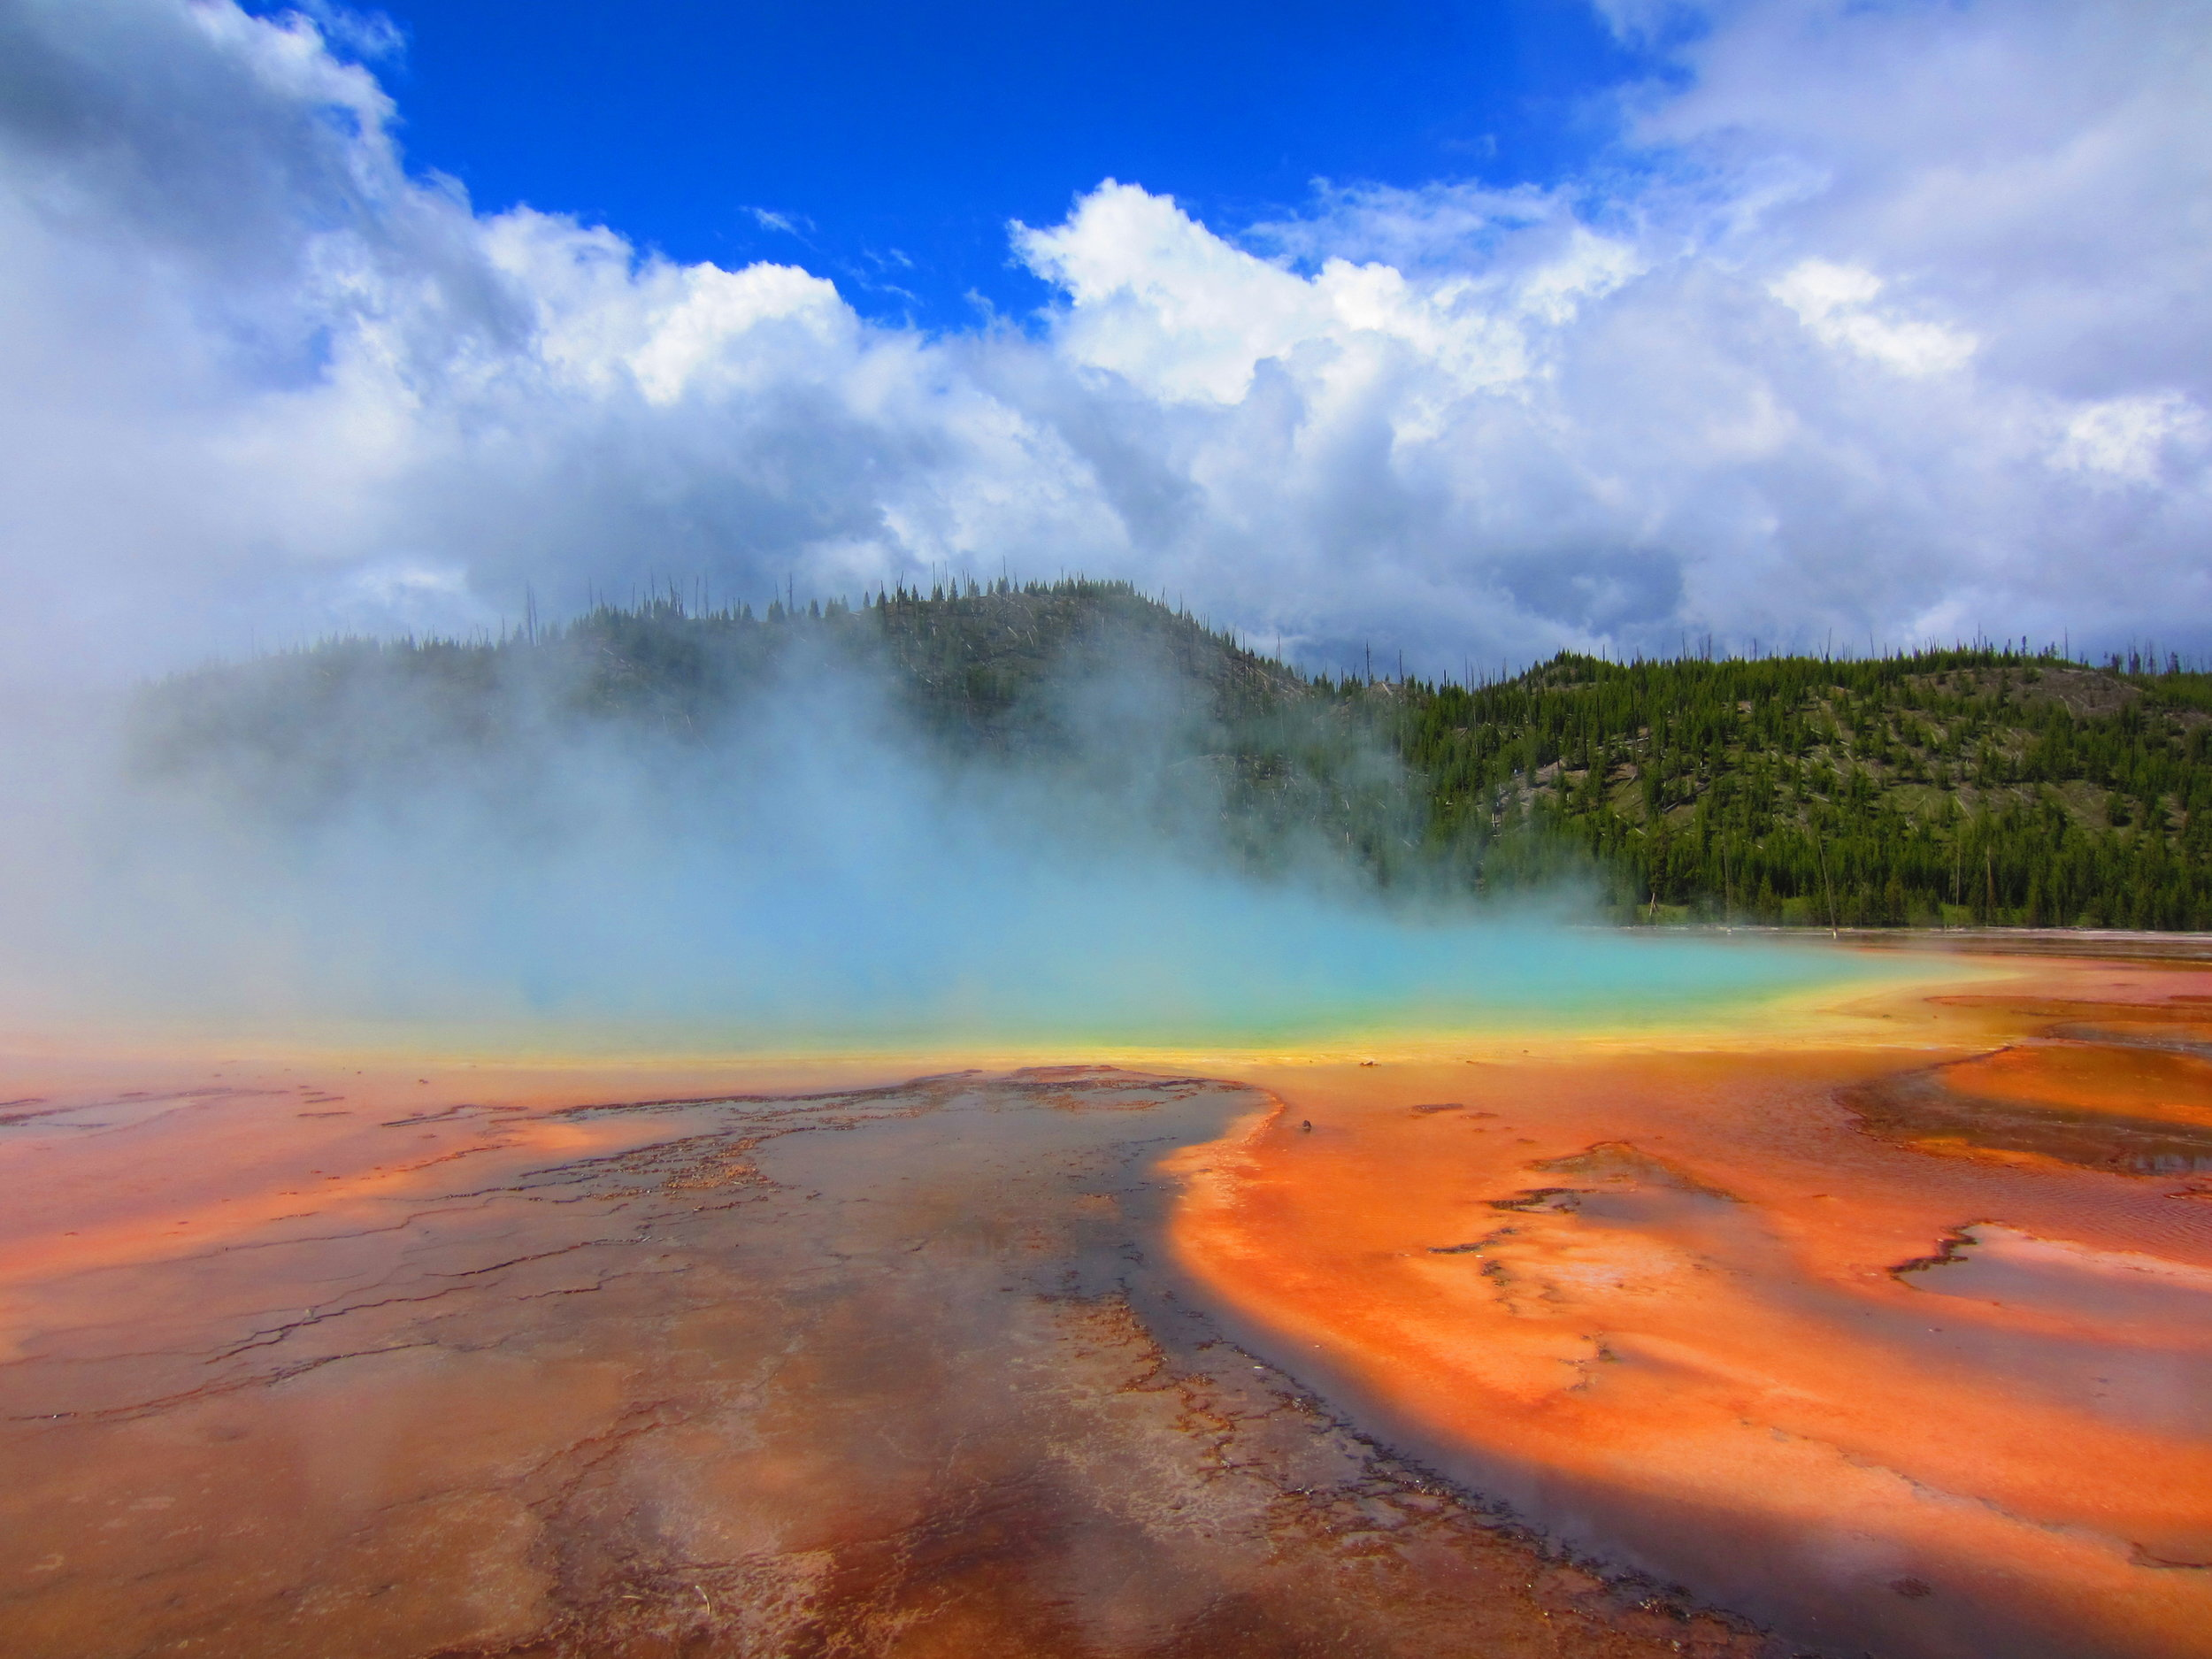 Grand Prismatic Spring, Yellowstone National Park. The vivid colors are the result of thermophilic bacteria that thrive in these otherwise hostile conditions.